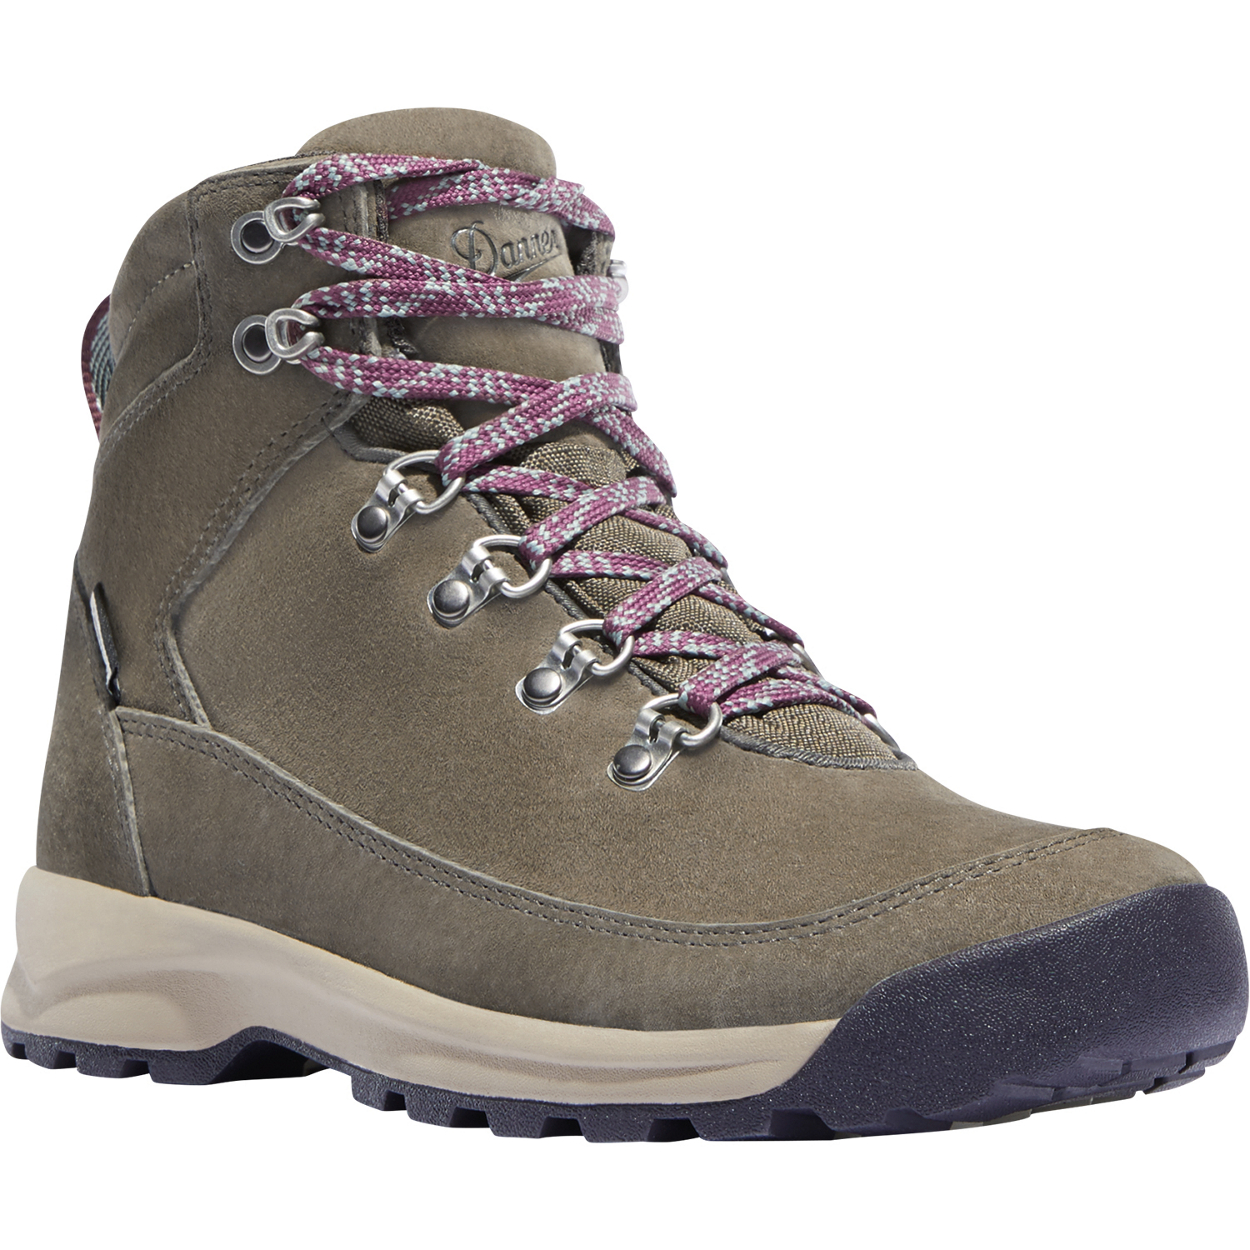 c66998e18c6f6 Danner | Deals on Gear, CleanSnipe